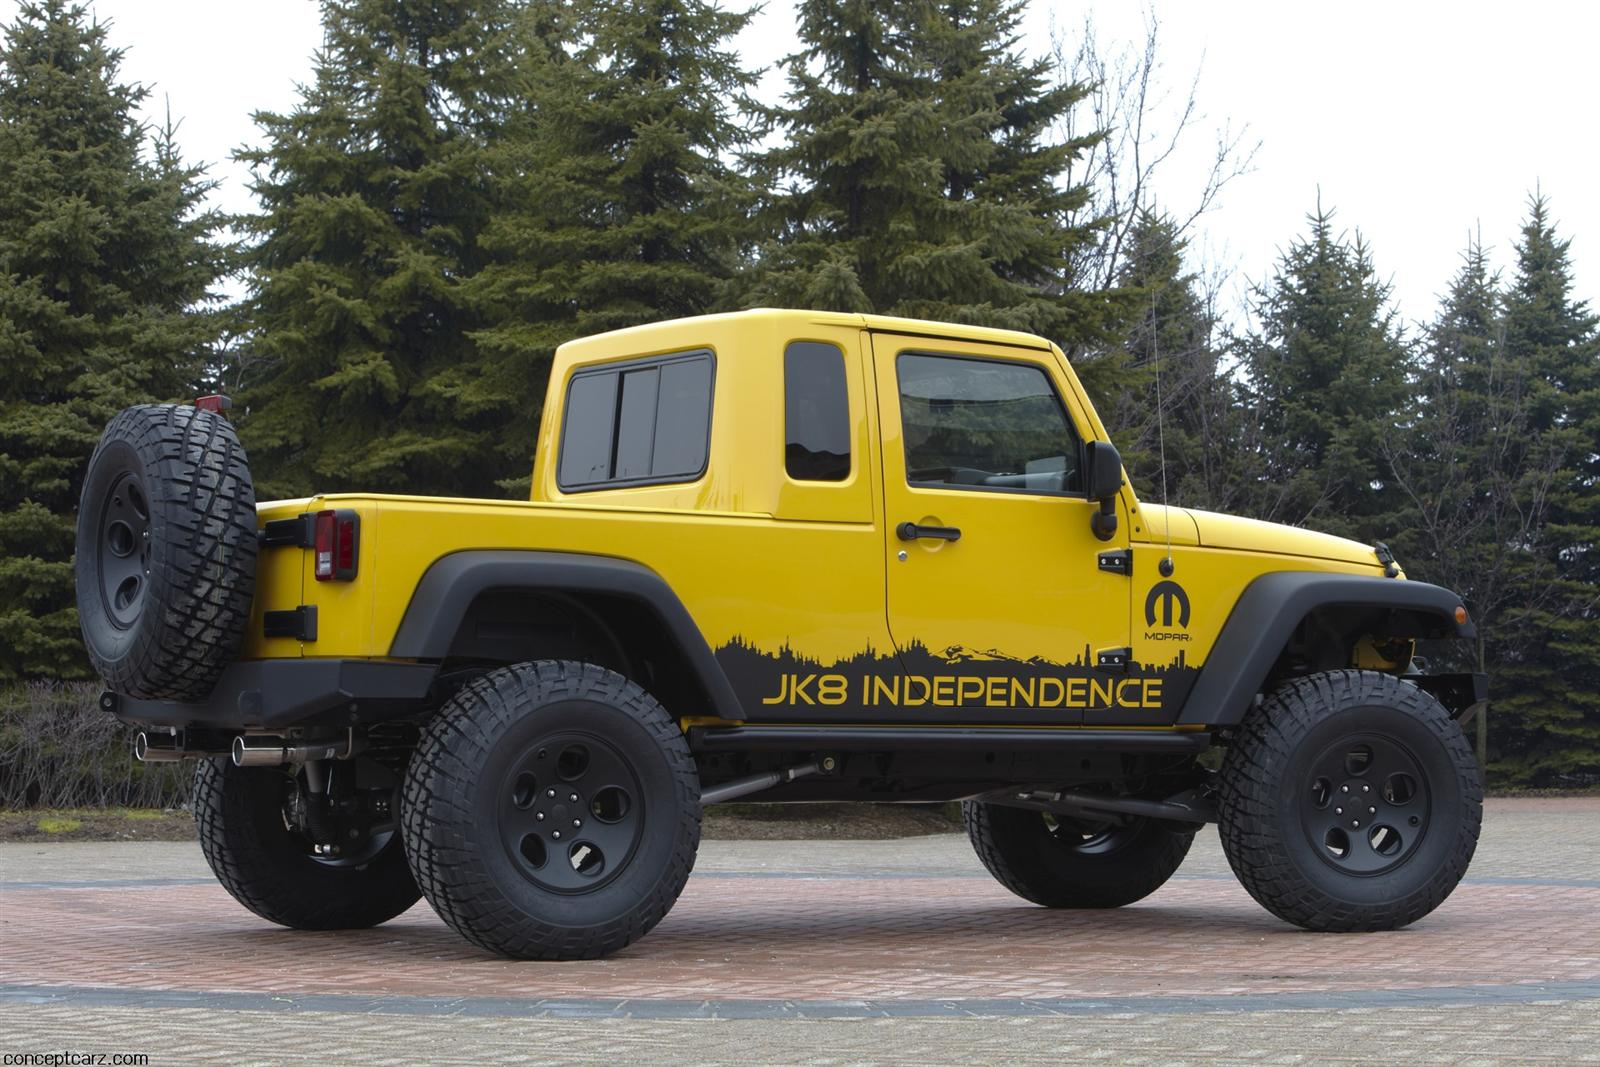 2011 Jeep JK 8 Independence Desktop Wallpaper Free